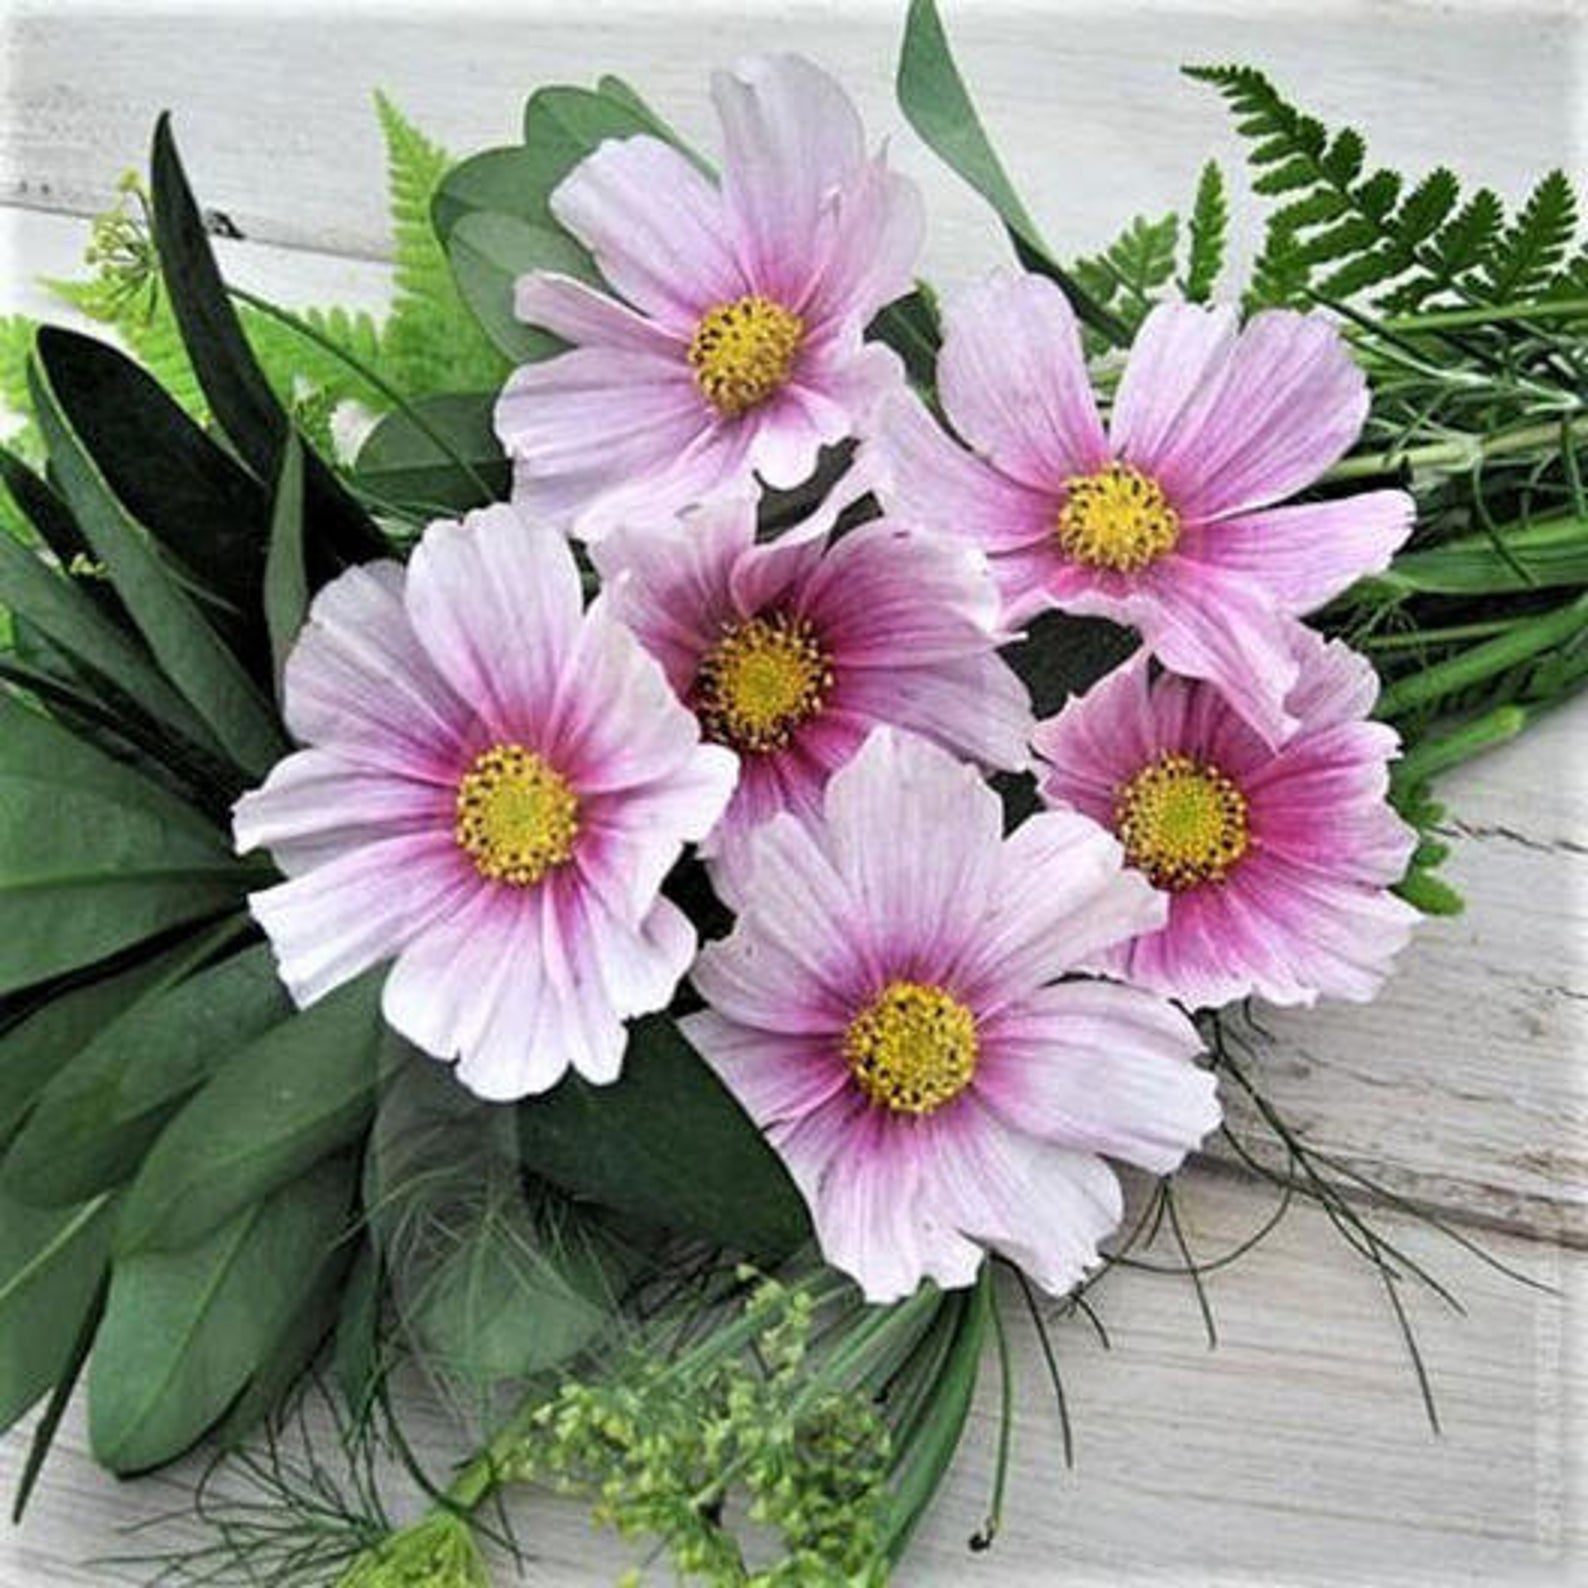 Daydream Cosmos Seeds - beautiful white with pink and yellow centers, available for sale on Etsy. Photo courtesy of seller, DaisyHeader. https://tidd.ly/3iikcgp